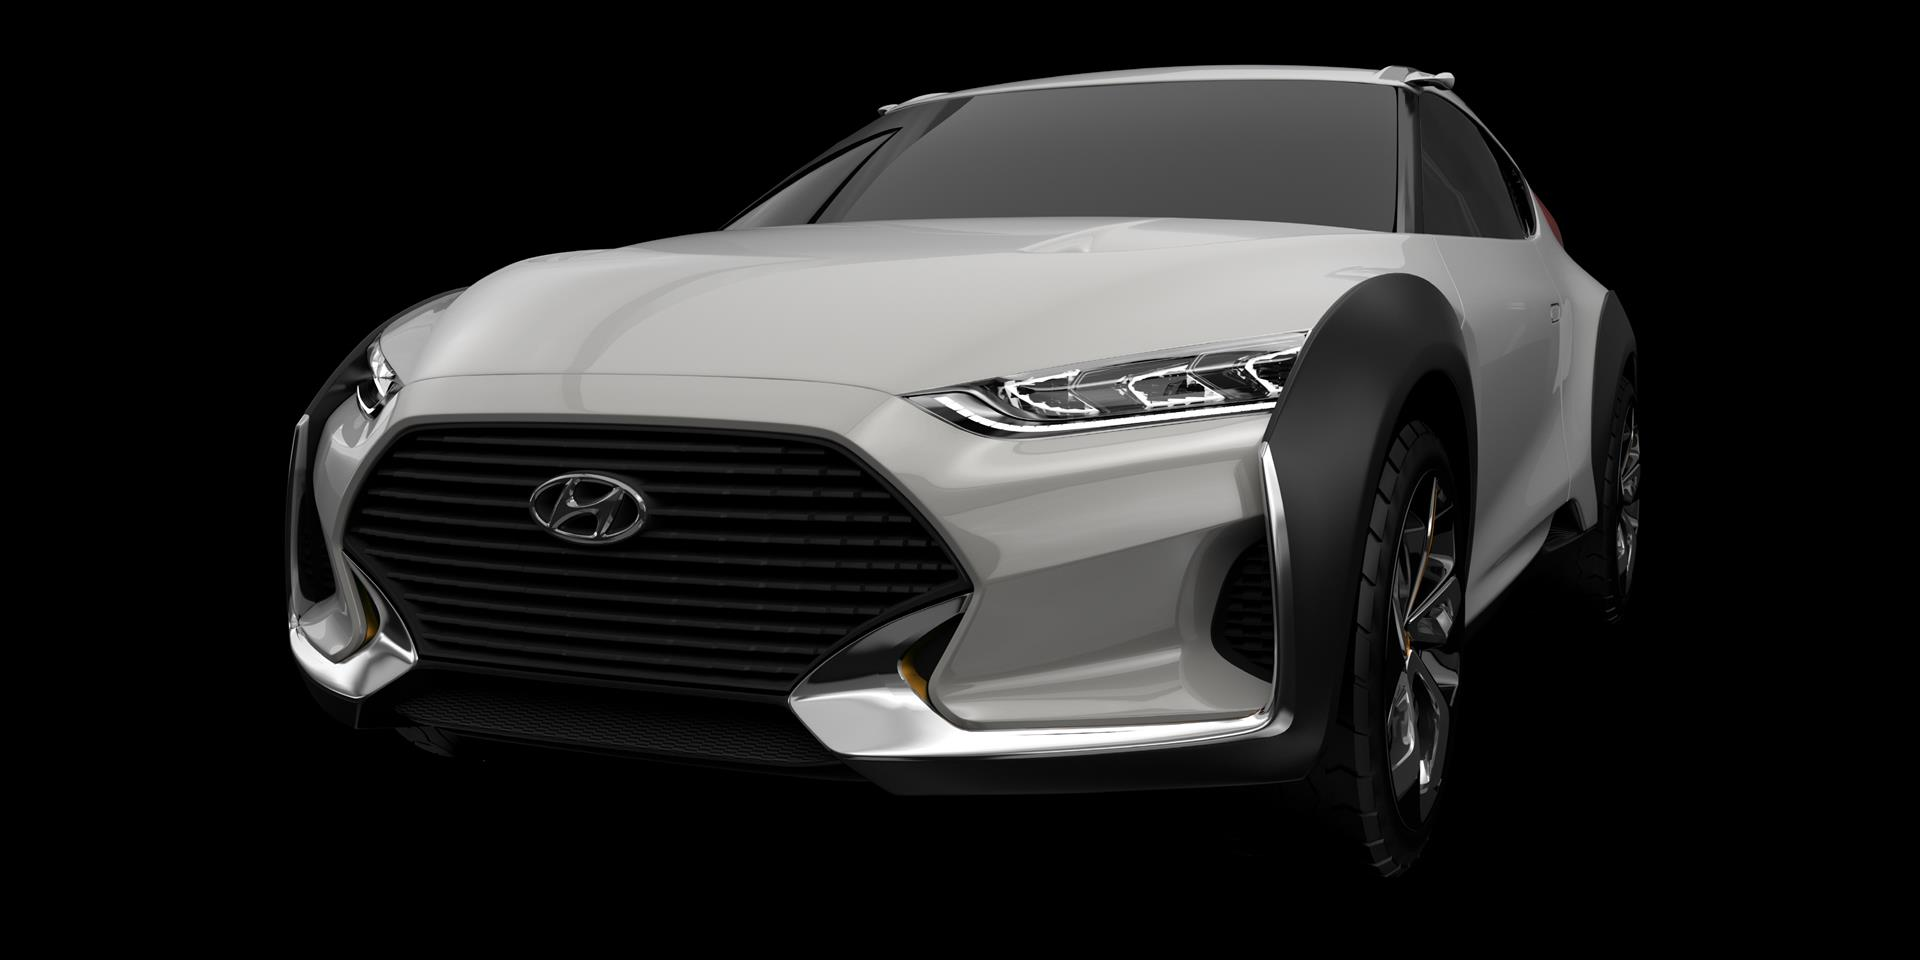 Hyundai Enduro CUV Concept pictures and wallpaper